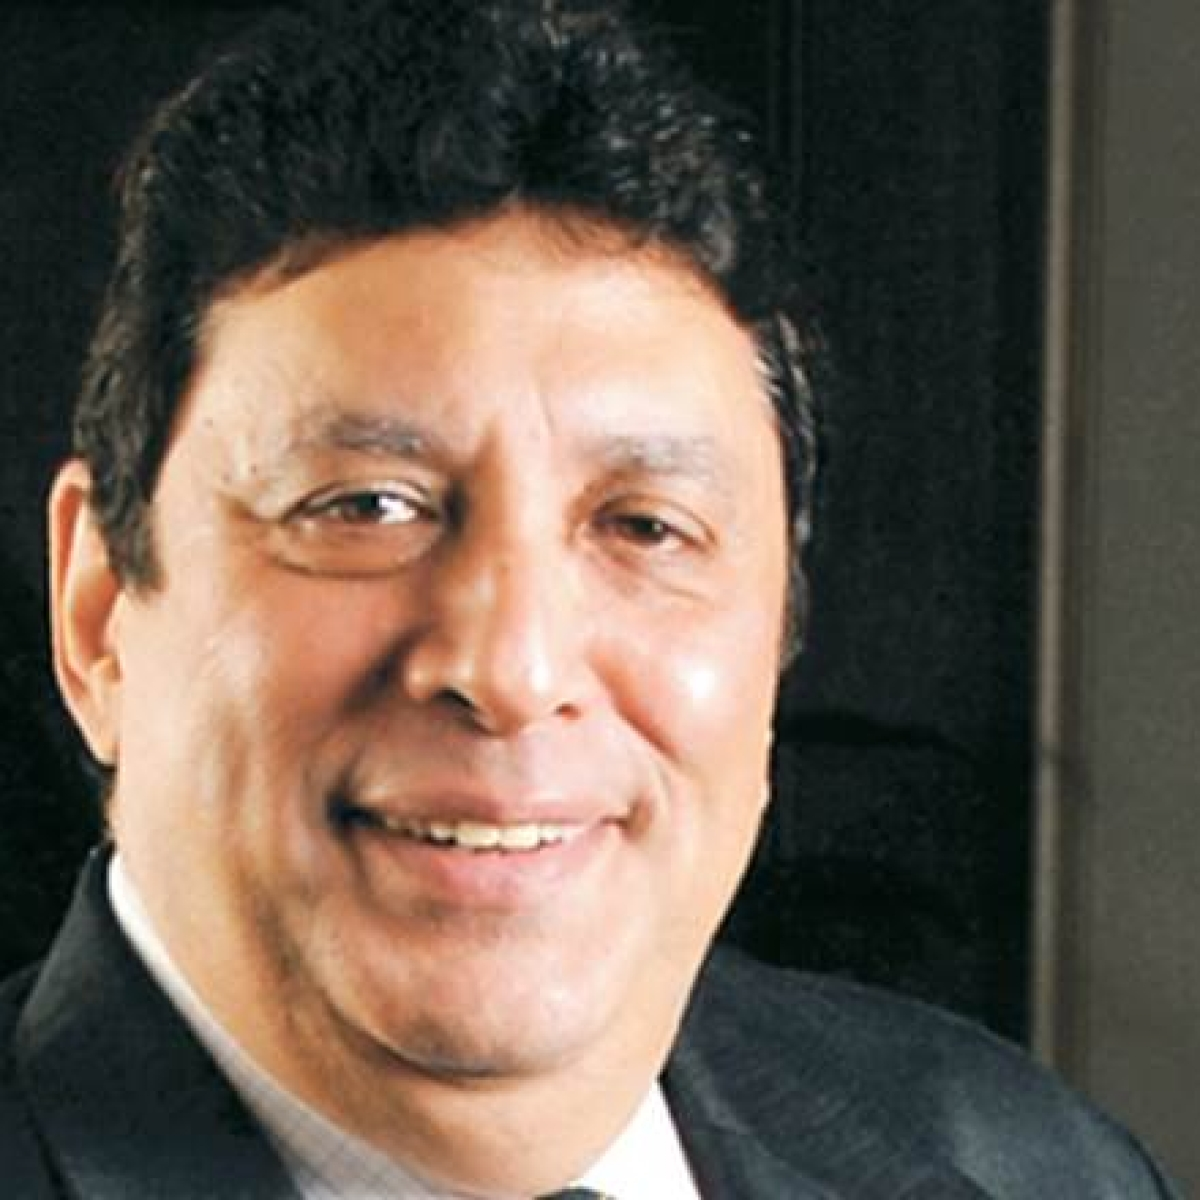 HDFC to invest Rs 250 crore in stressed assets fund for realty sector: Mistry